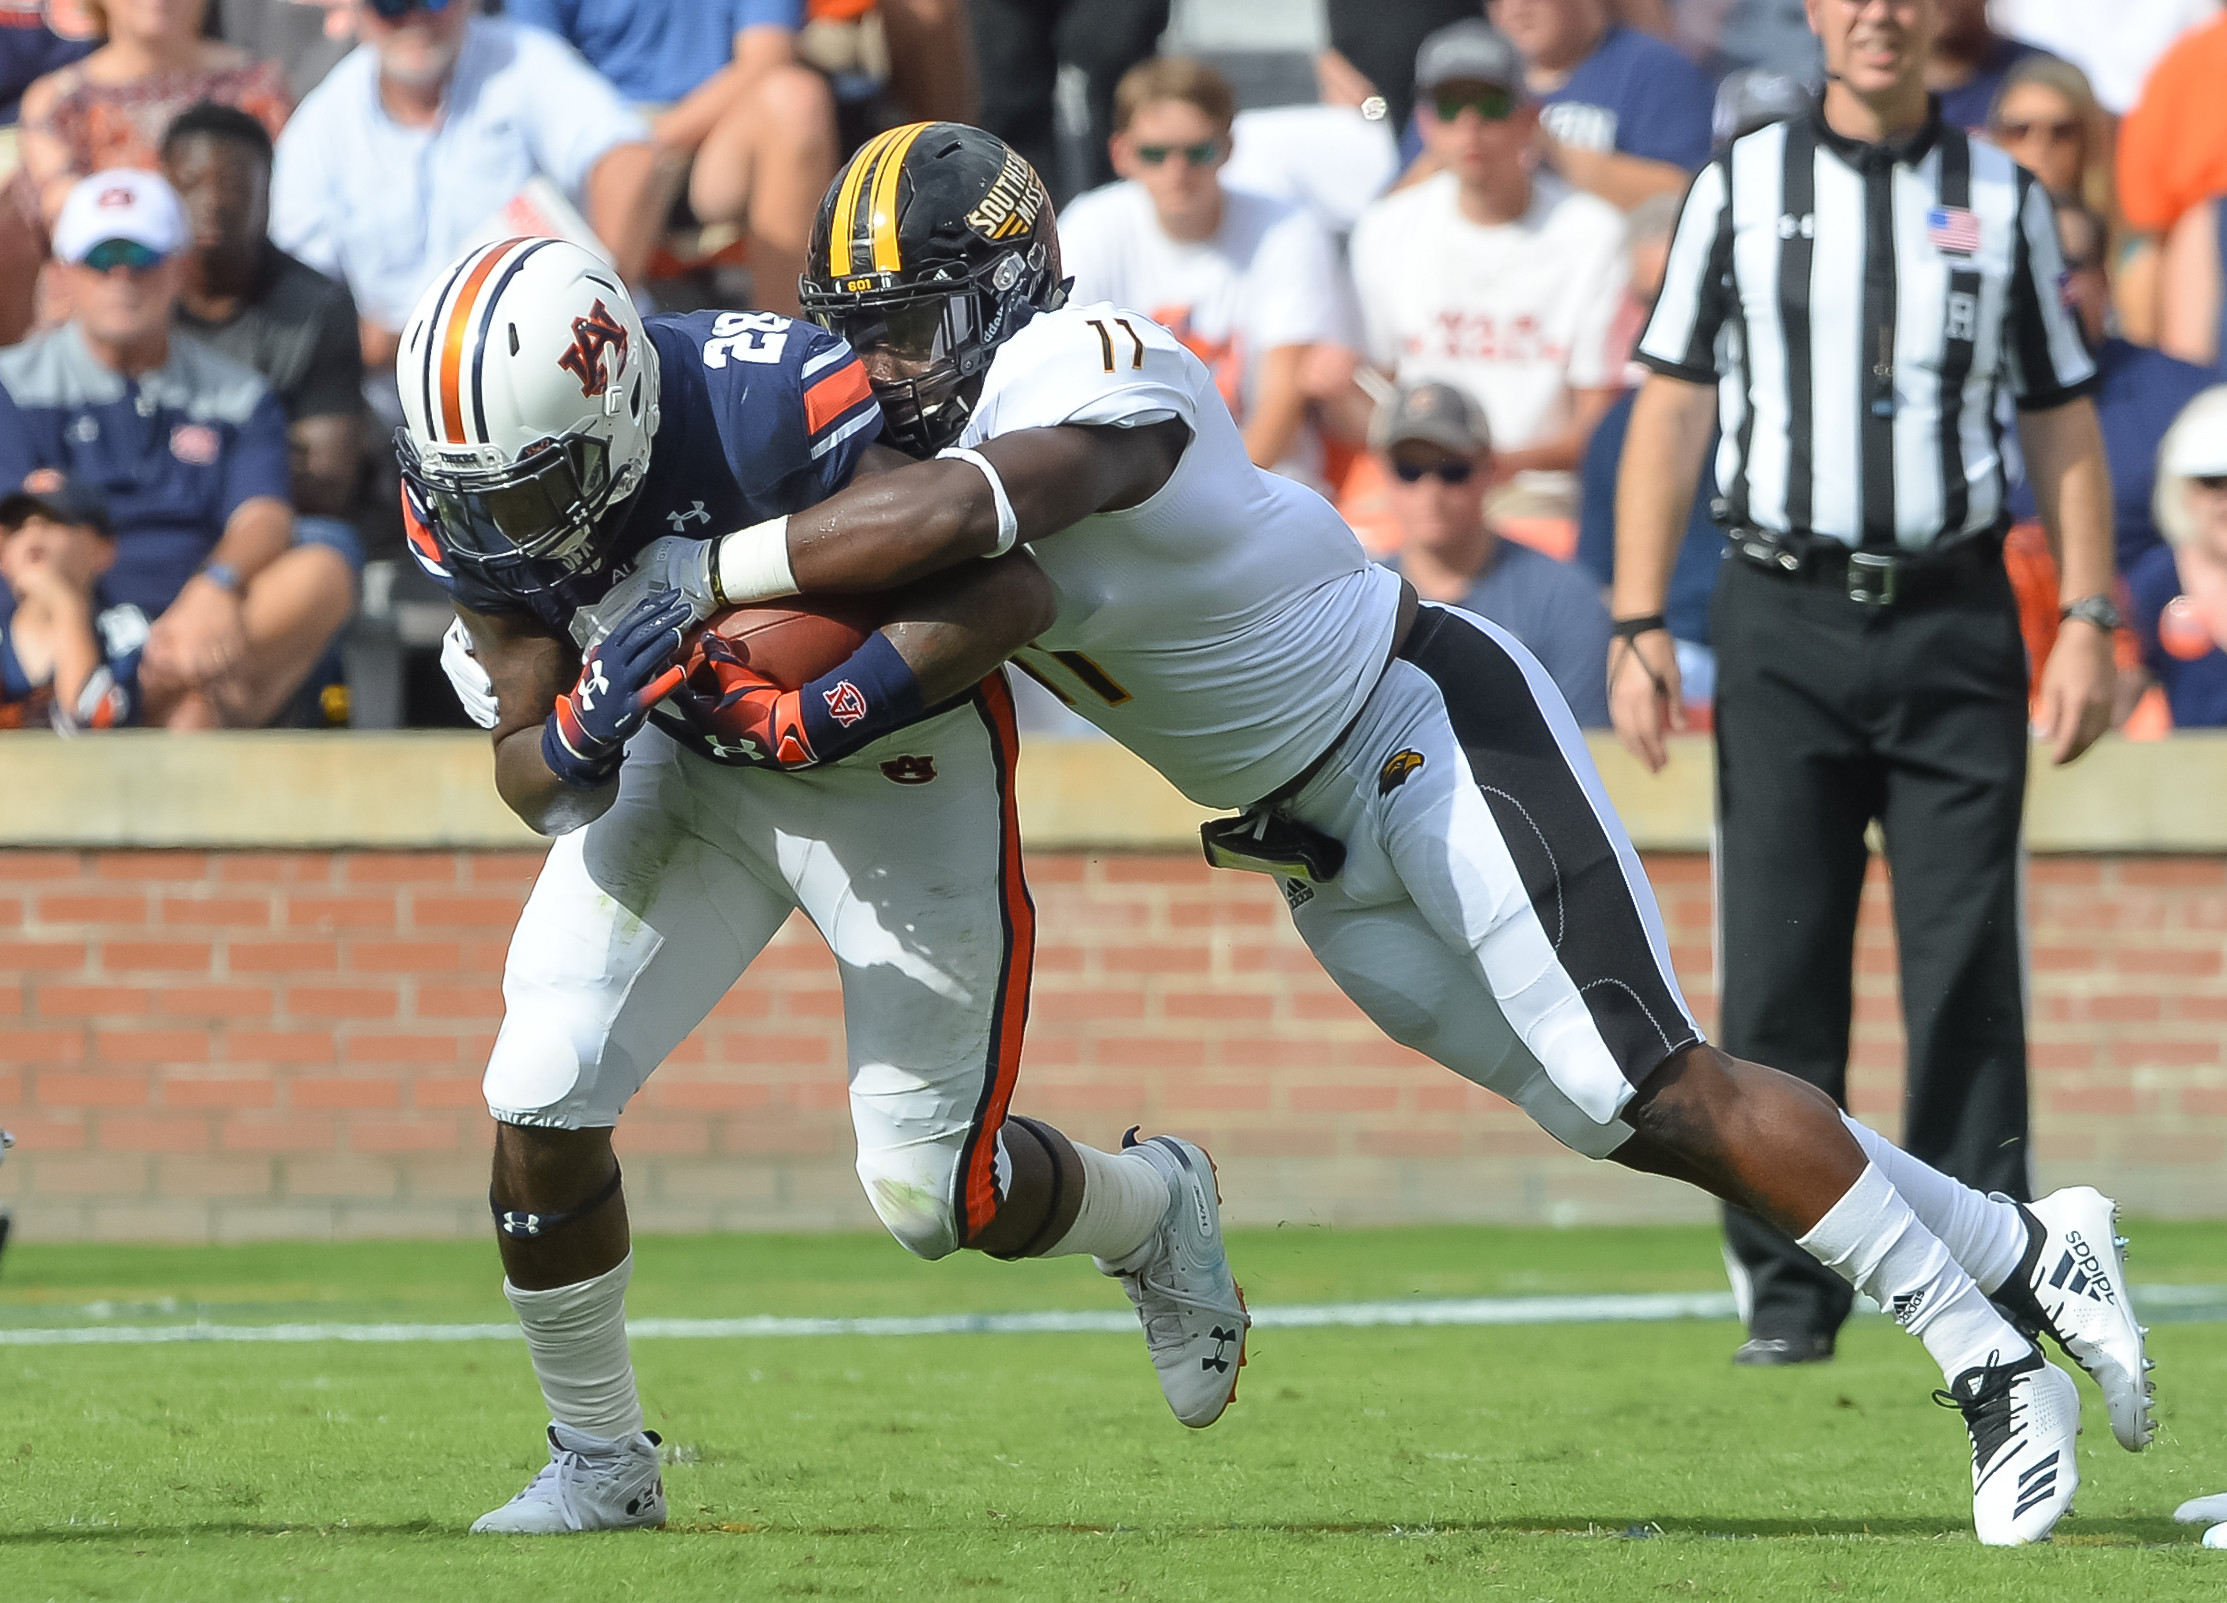 Auburn Tigers running back JaTarvious Whitlow (28) is tackled by Southern Miss Golden Eagles linebacker Sherrod Ruff (11) during the first half of Saturday's game, at Jordan Hare Stadium in Auburn AL. Daily Mountain Eagle -  Jeff Johnsey